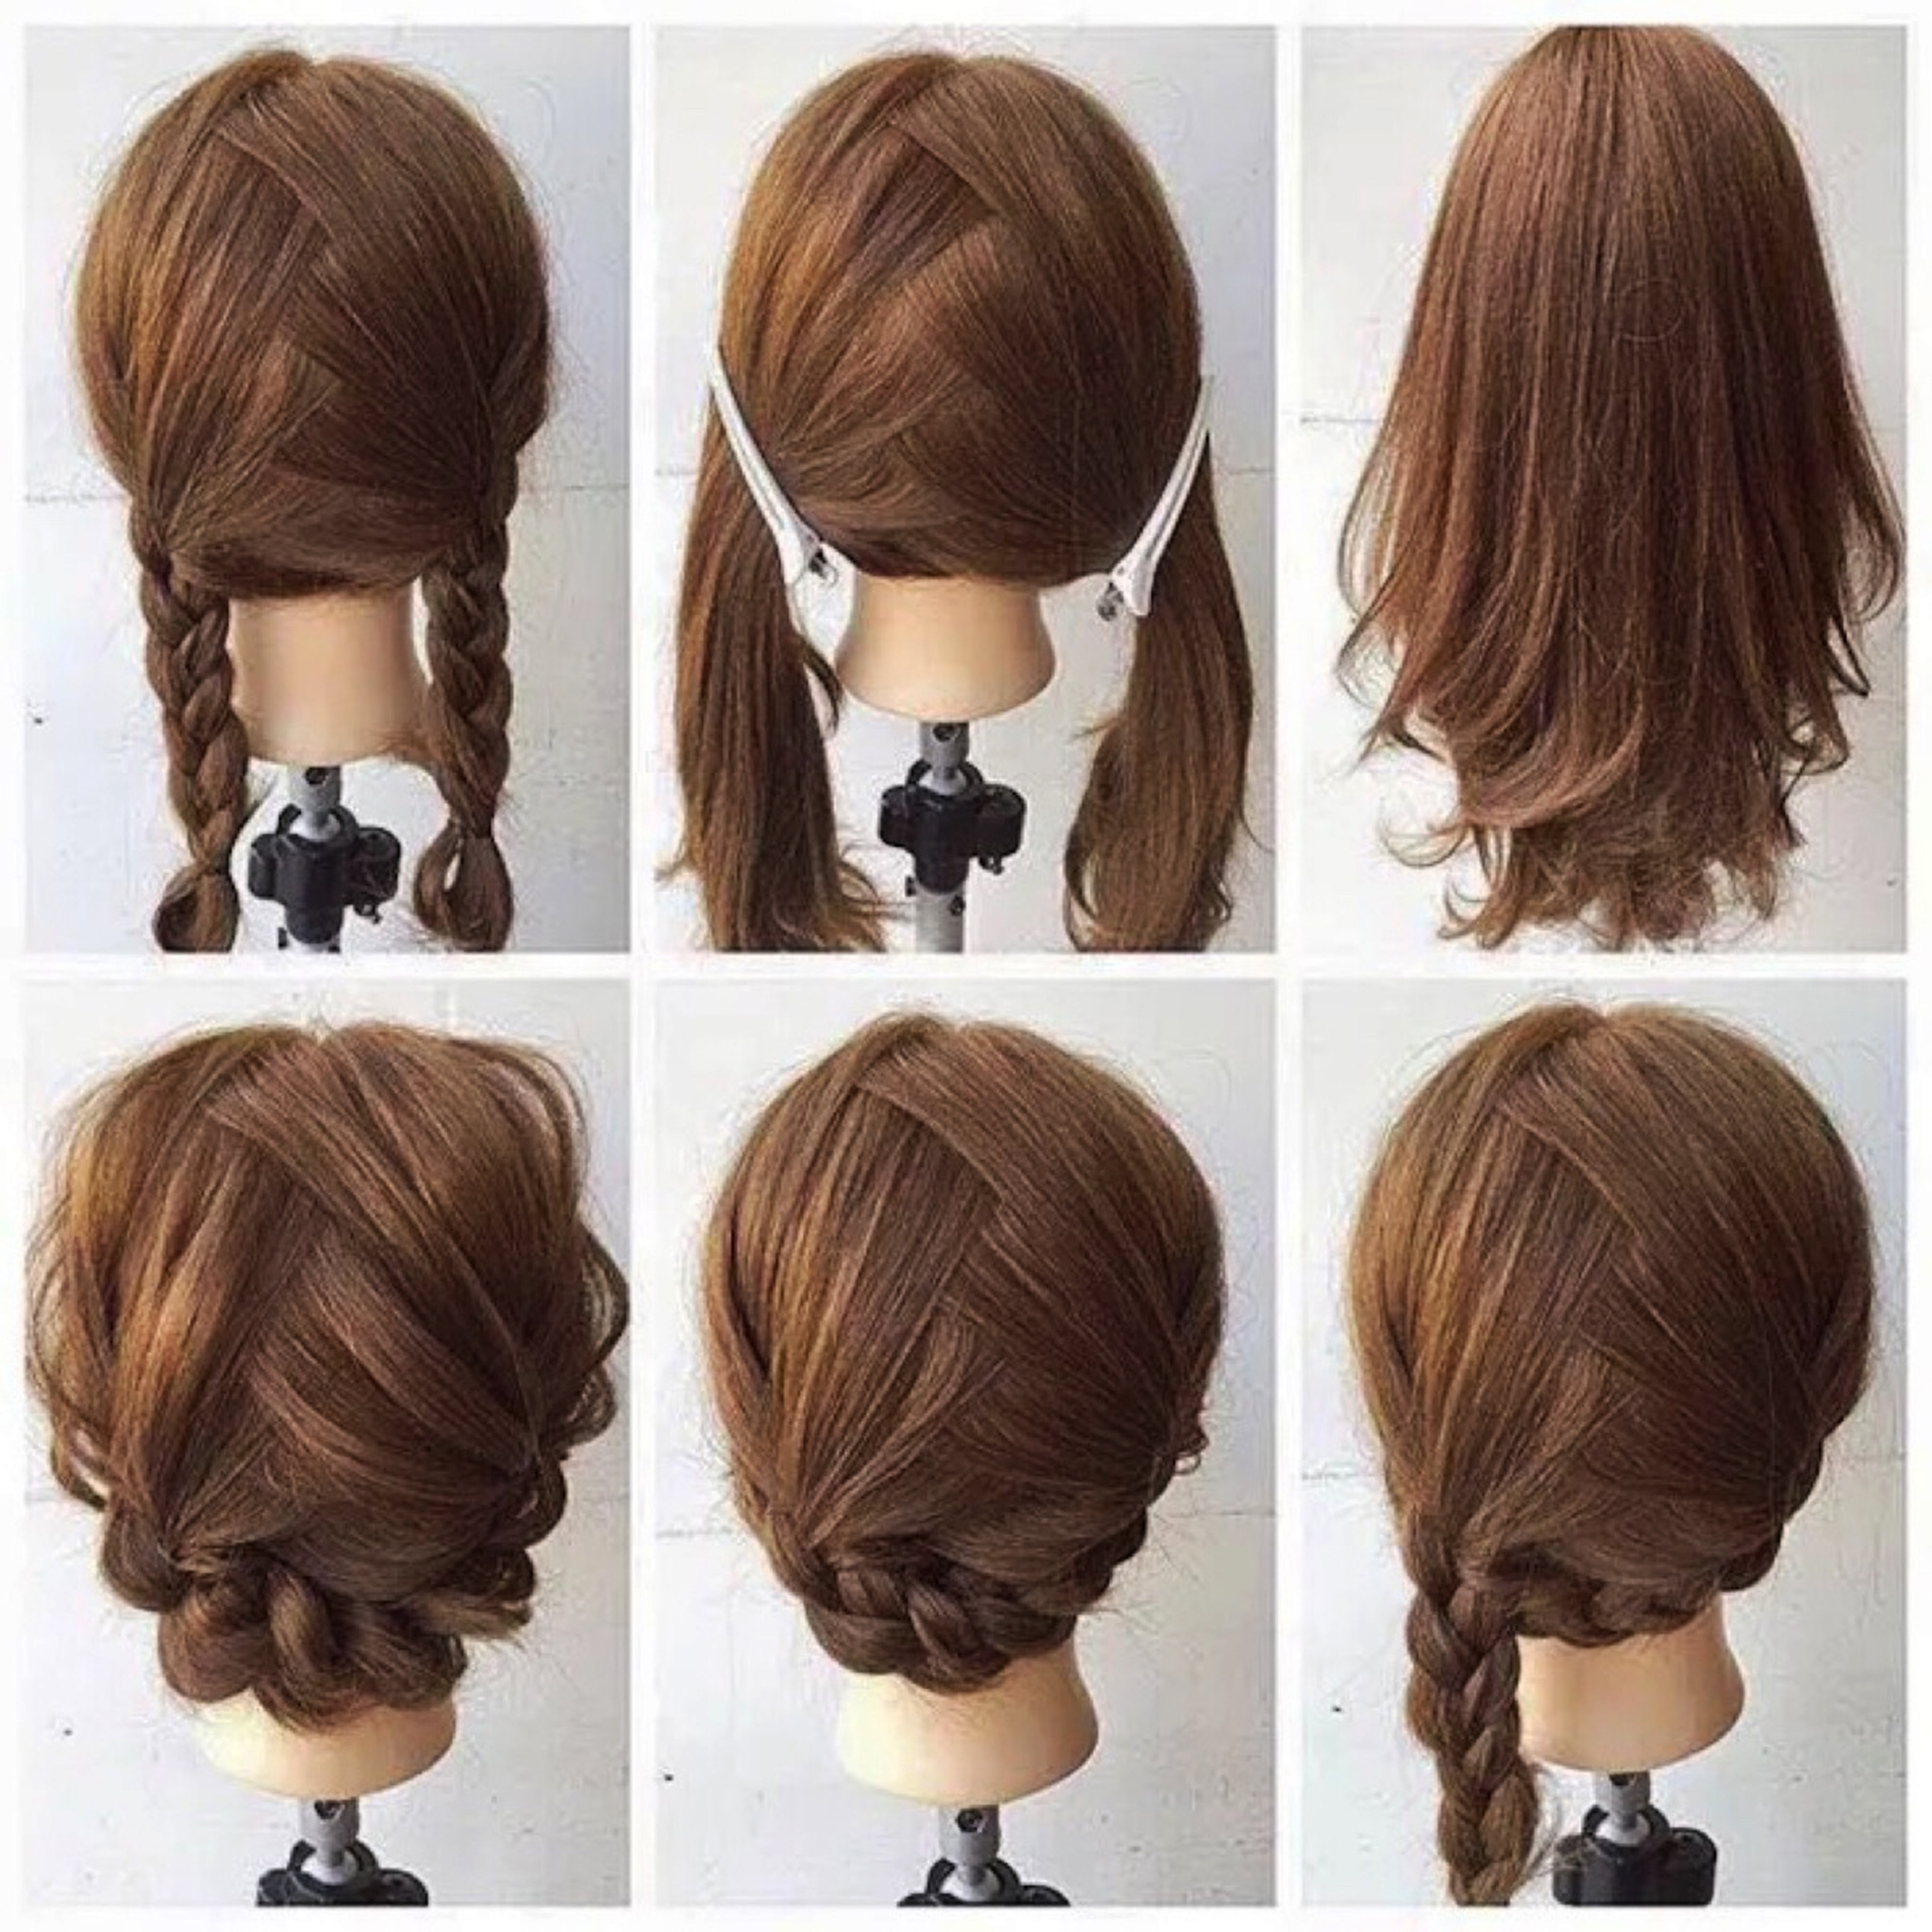 Favorite Medium Length Braided Hairstyles Intended For Fashionable Braid Hairstyle For Shoulder Length Hair (View 8 of 15)